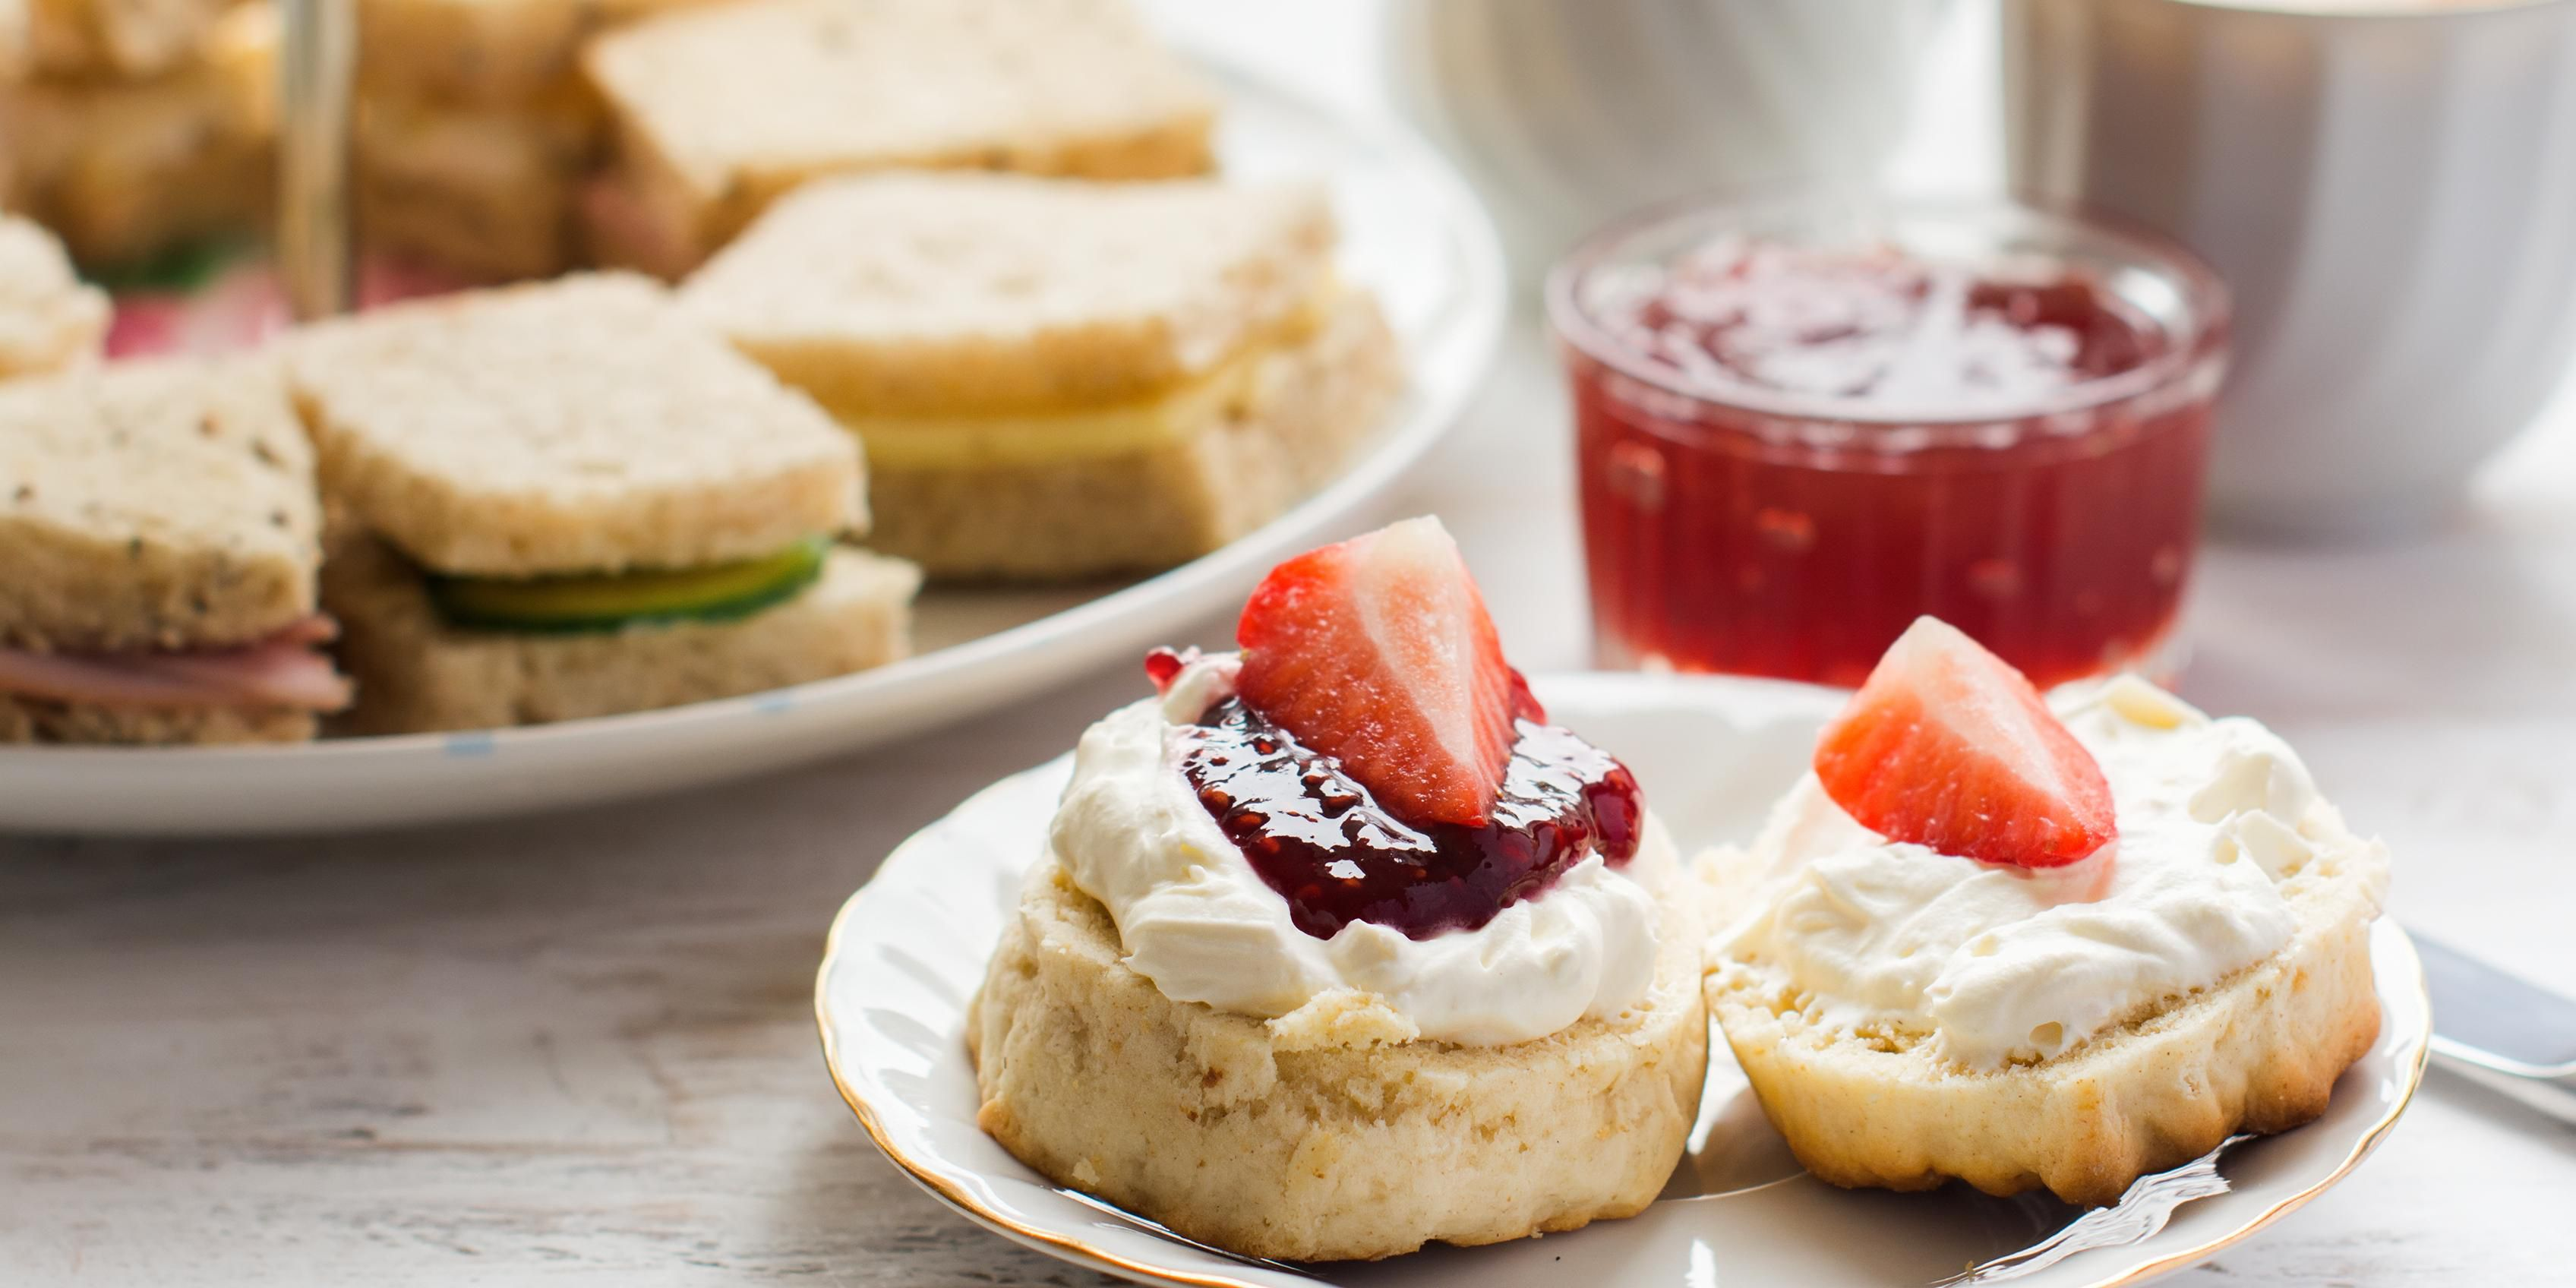 Afternoon tea at The Authors' Lounge